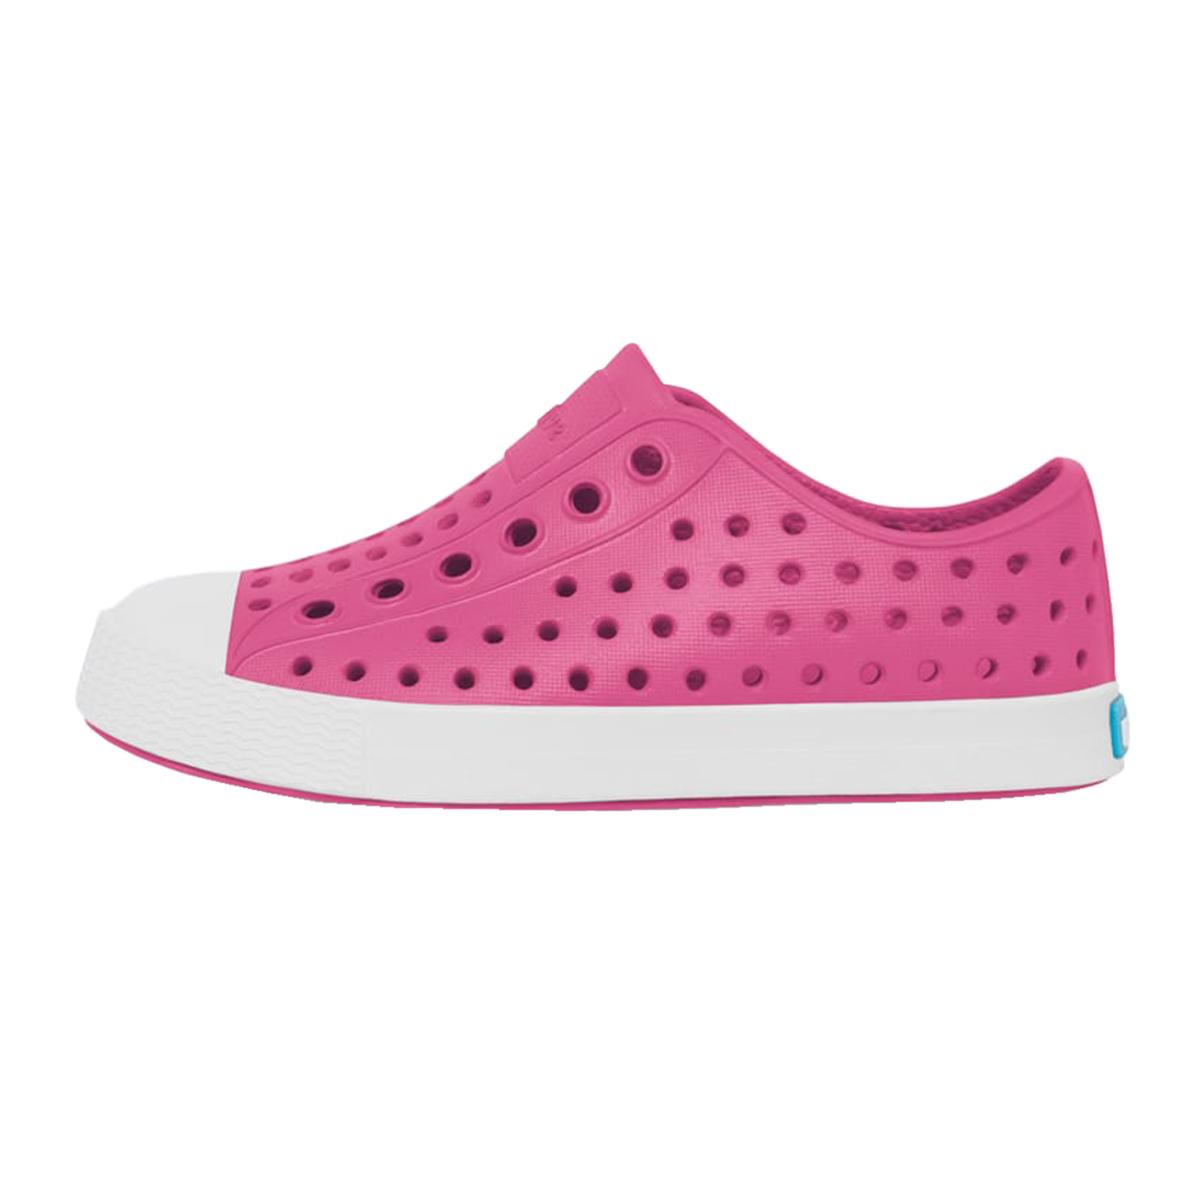 Native Shoes Jefferson Shoe in Hollywood Pink